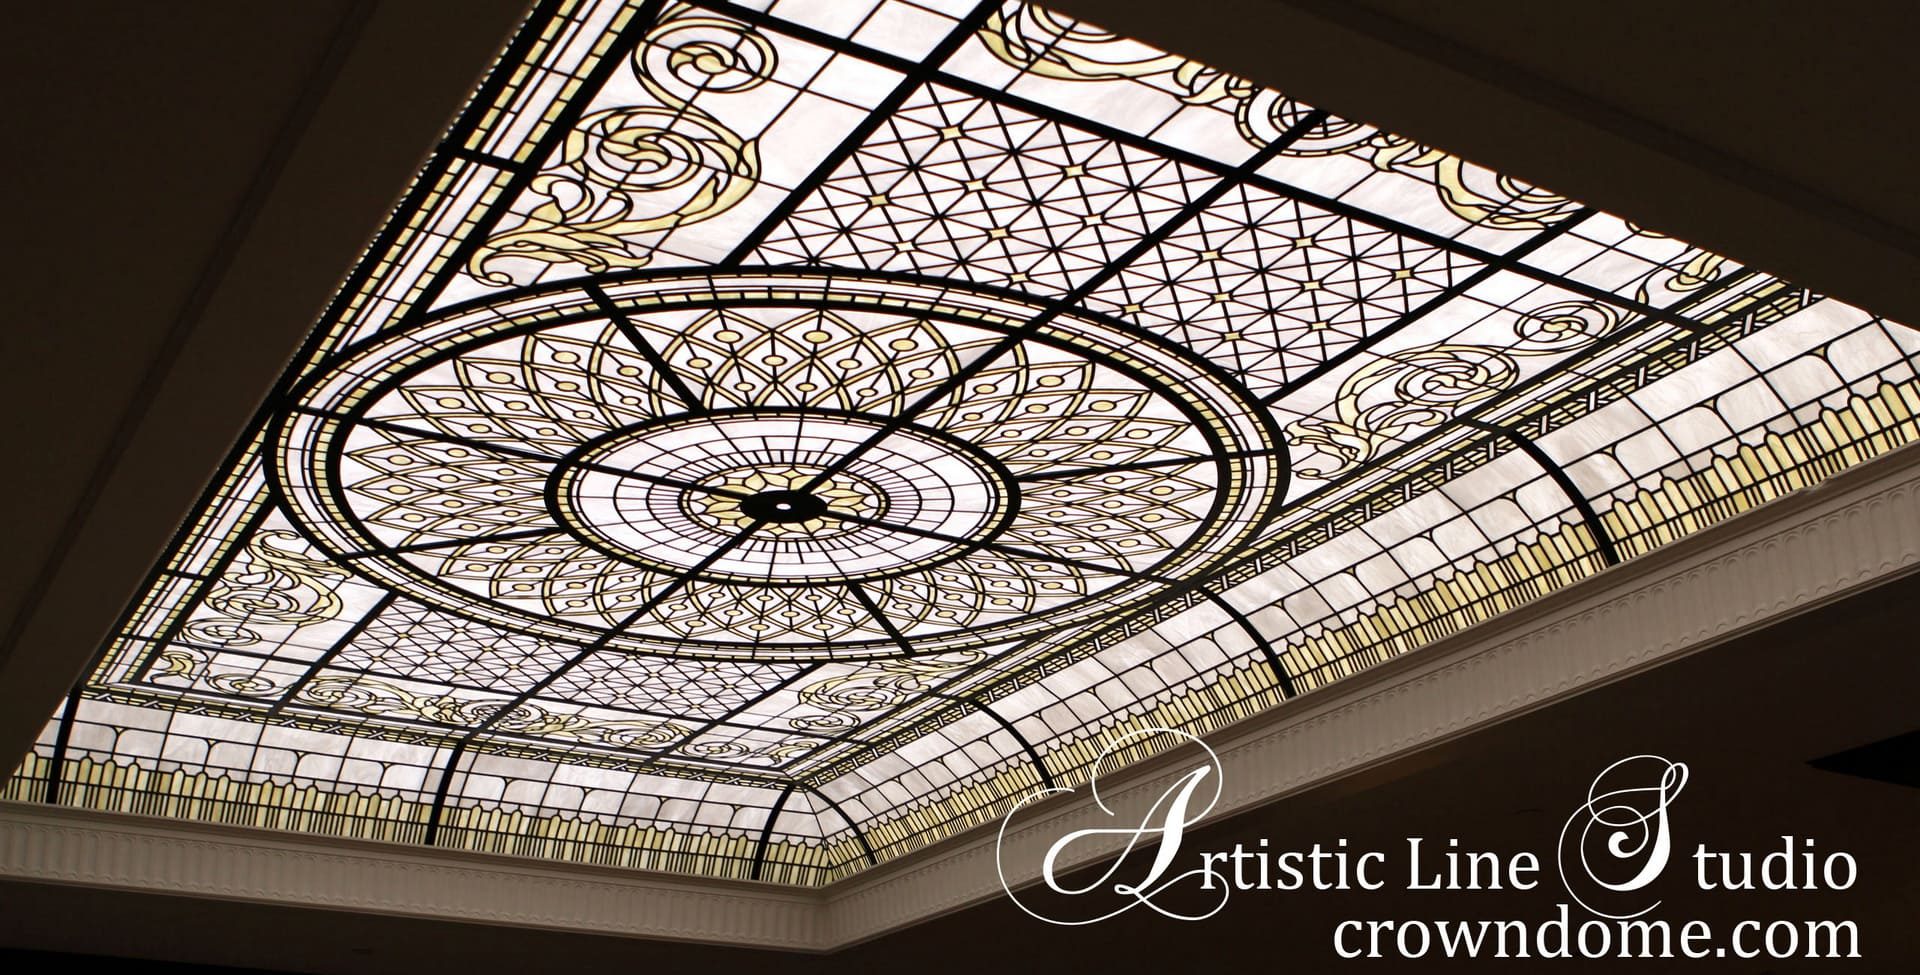 Stained and leaded glass skylight ceiling in classical style